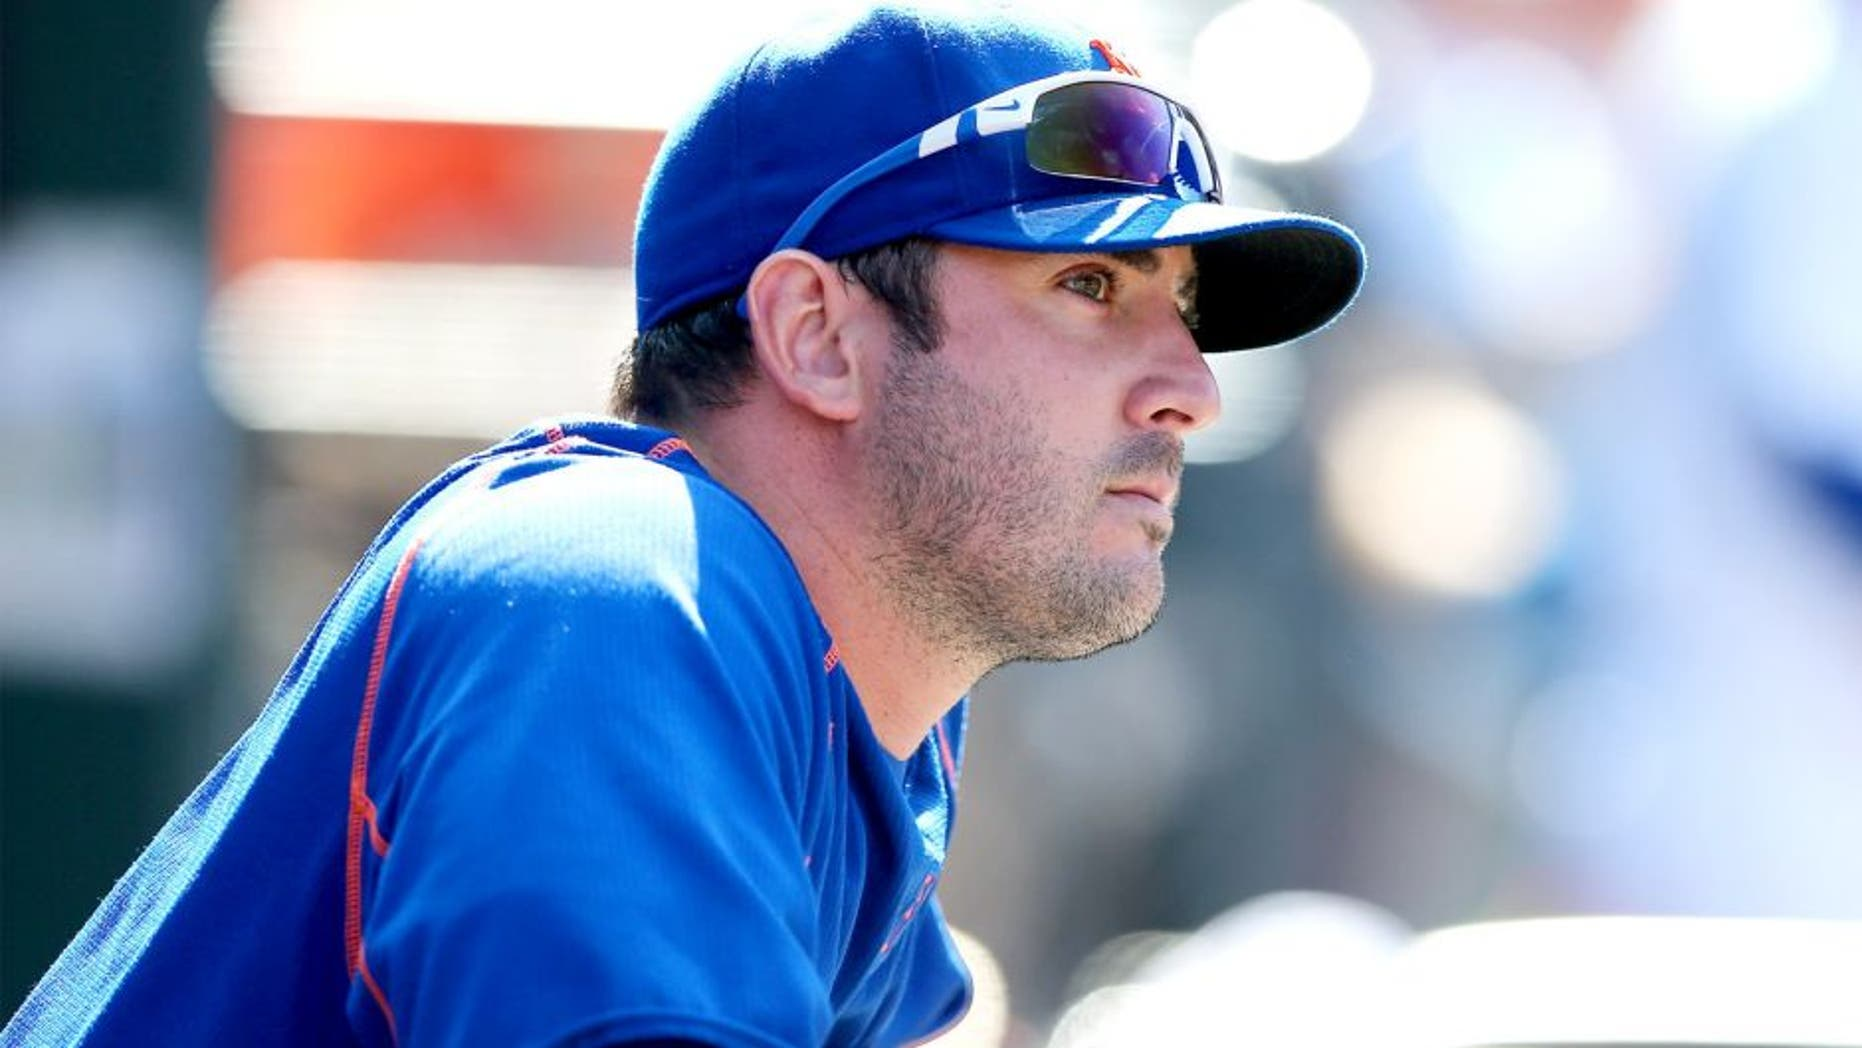 NEW YORK, NY - SEPTEMBER 19: Matt Harvey #33 of the New York Mets looks on from the dugout in the seventh inning against the New York Yankees during interleague play on September 19, 2015 at Citi Field in the Flushing neighborhood of the Queens borough of New York City. (Photo by Elsa/Getty Images)